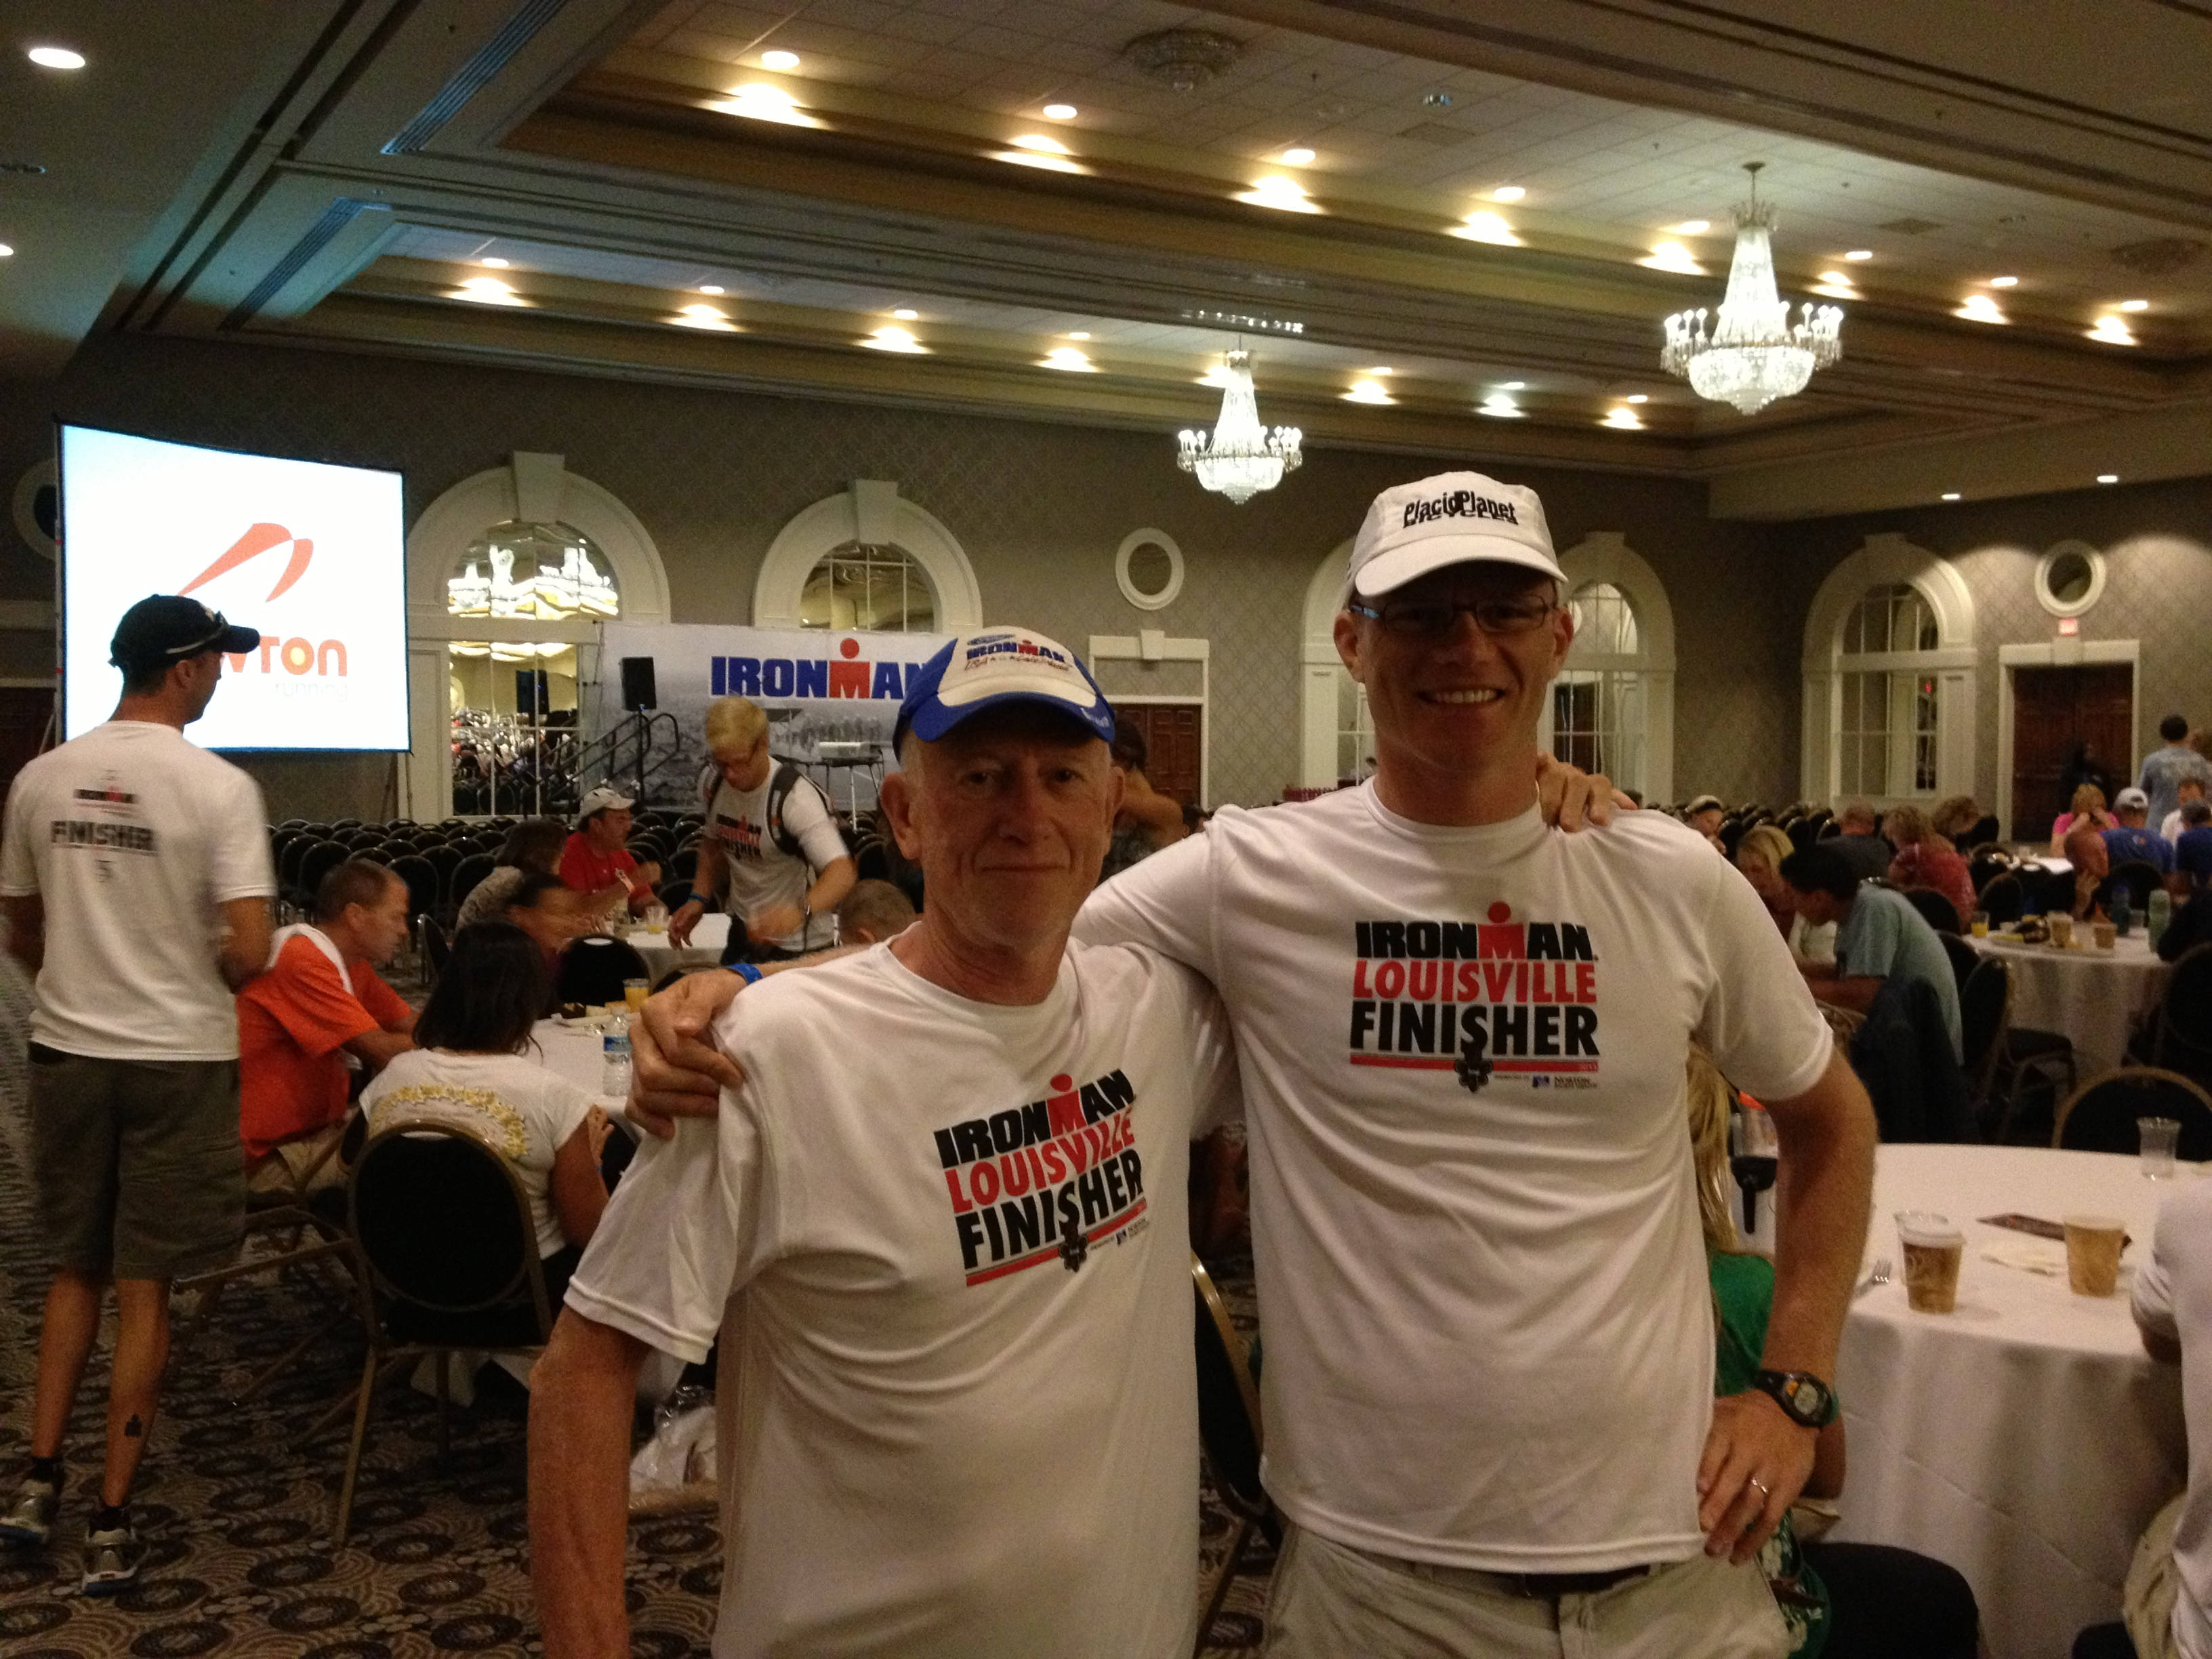 FitOldDog with his son after the 2013 Louisville Ironman